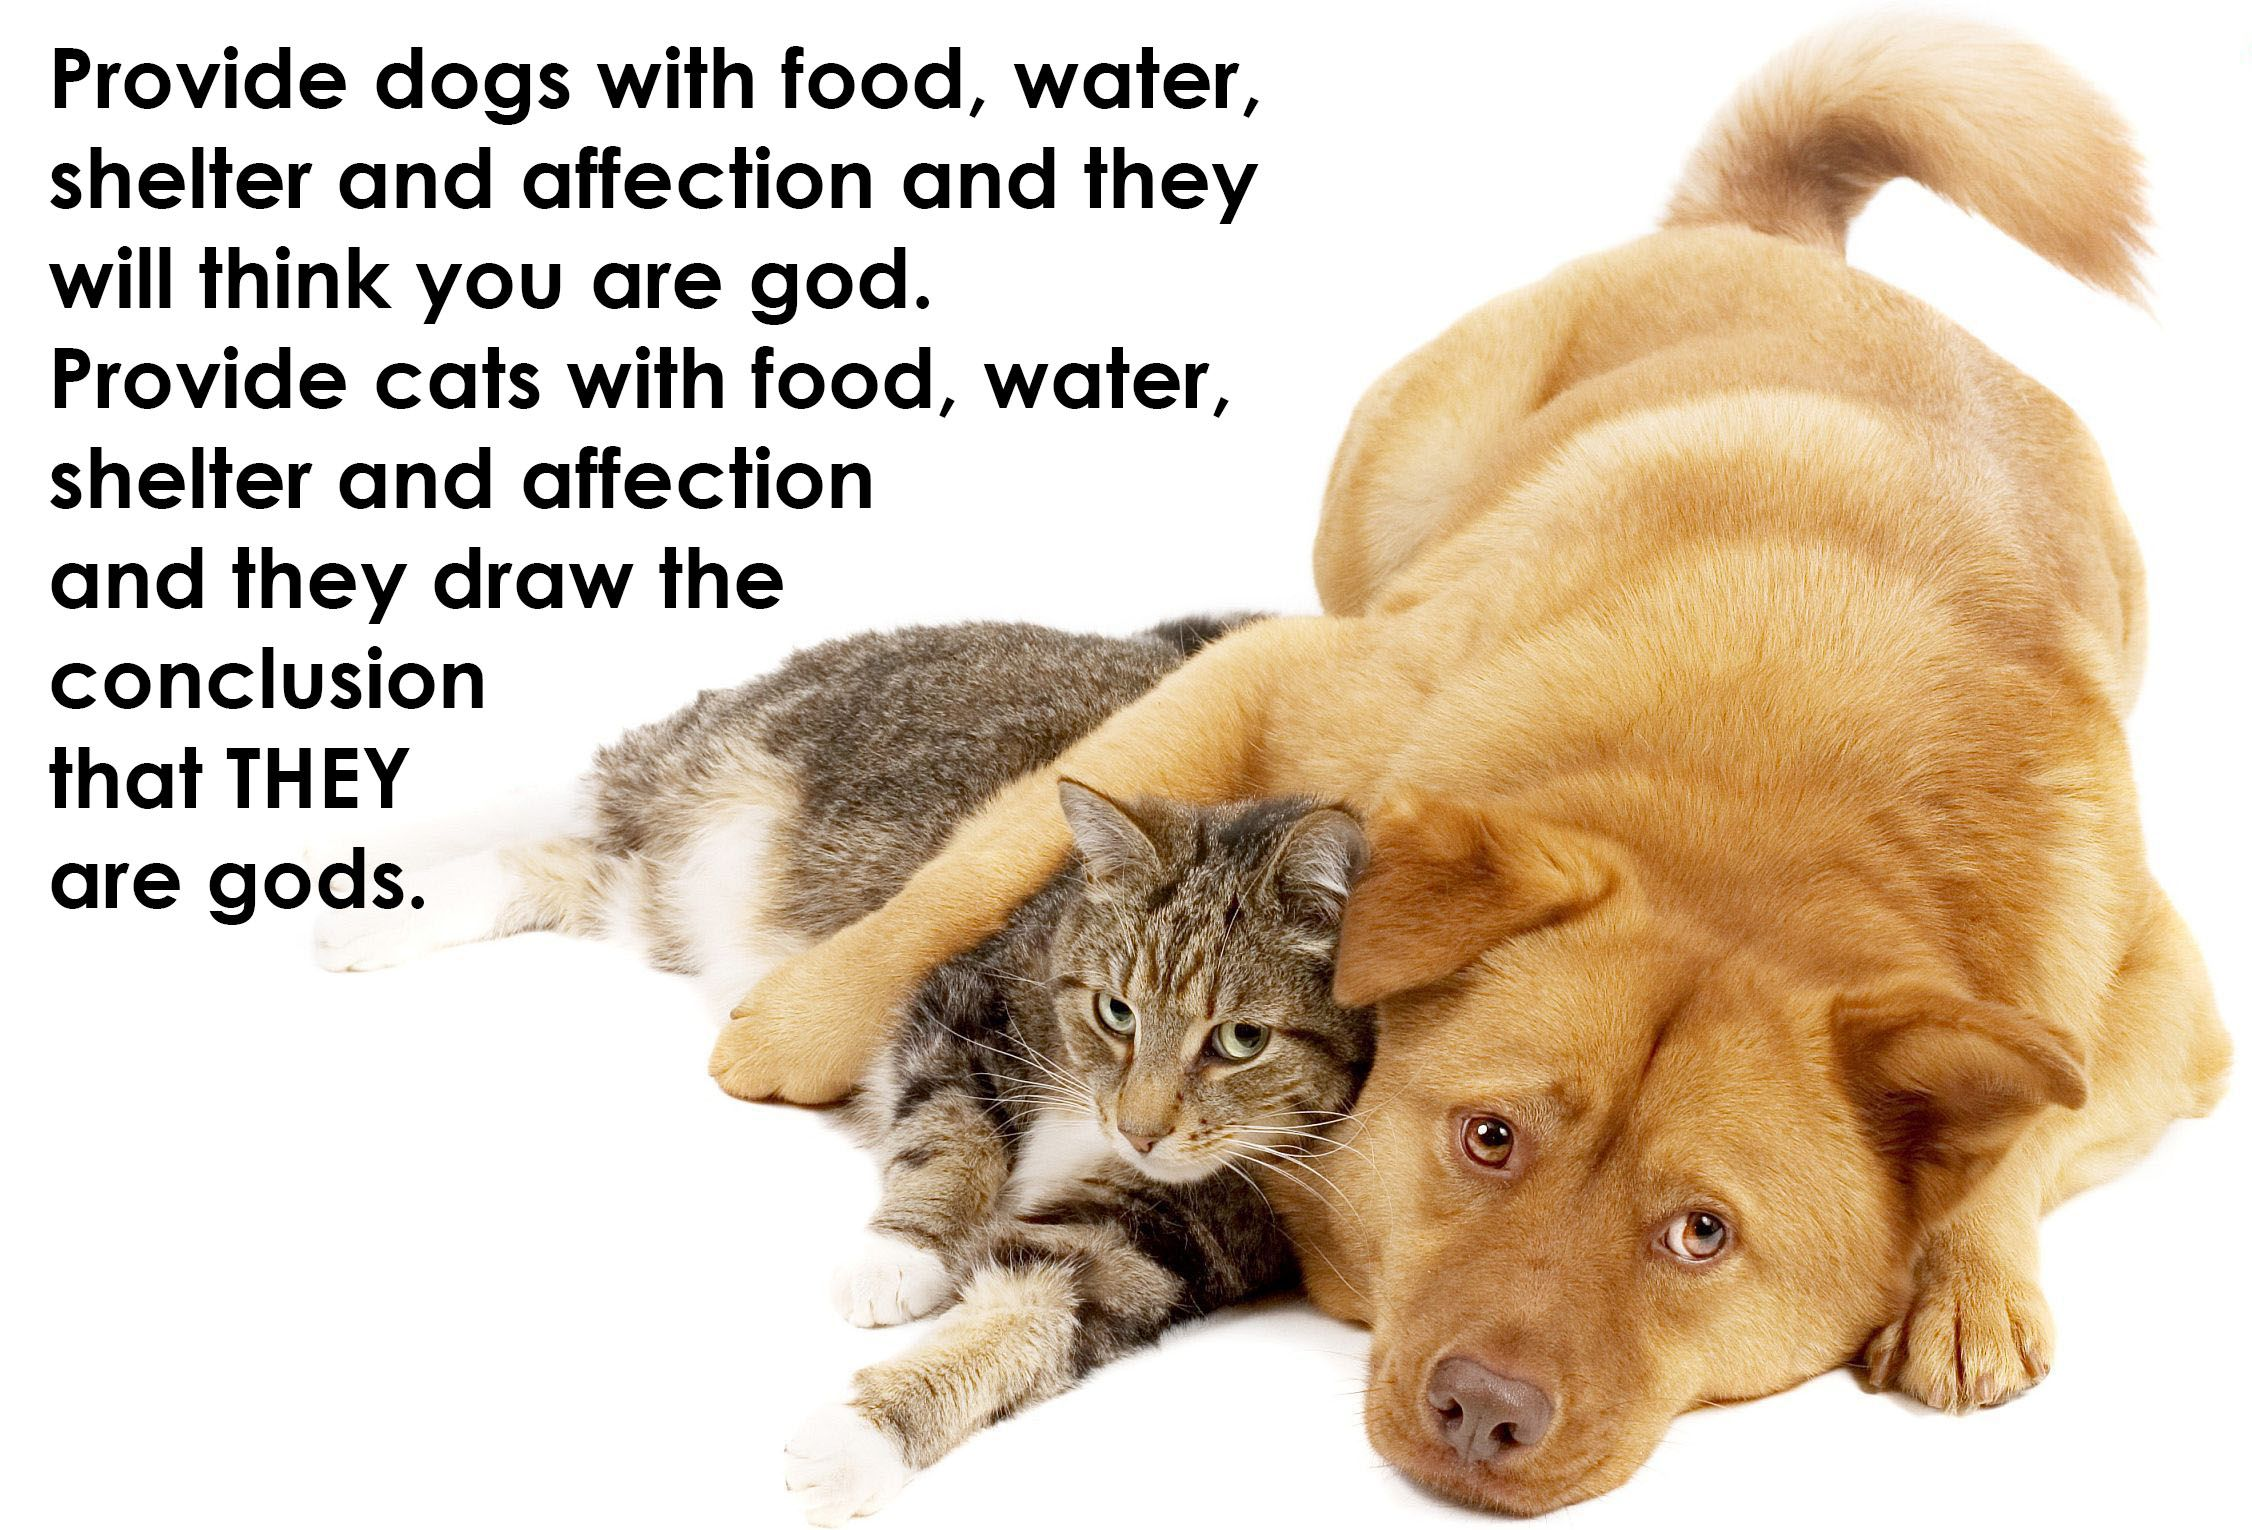 We Love This Quote Dogquote Catquote Cute Cats And Dogs Cat Quotes Dog Quotes